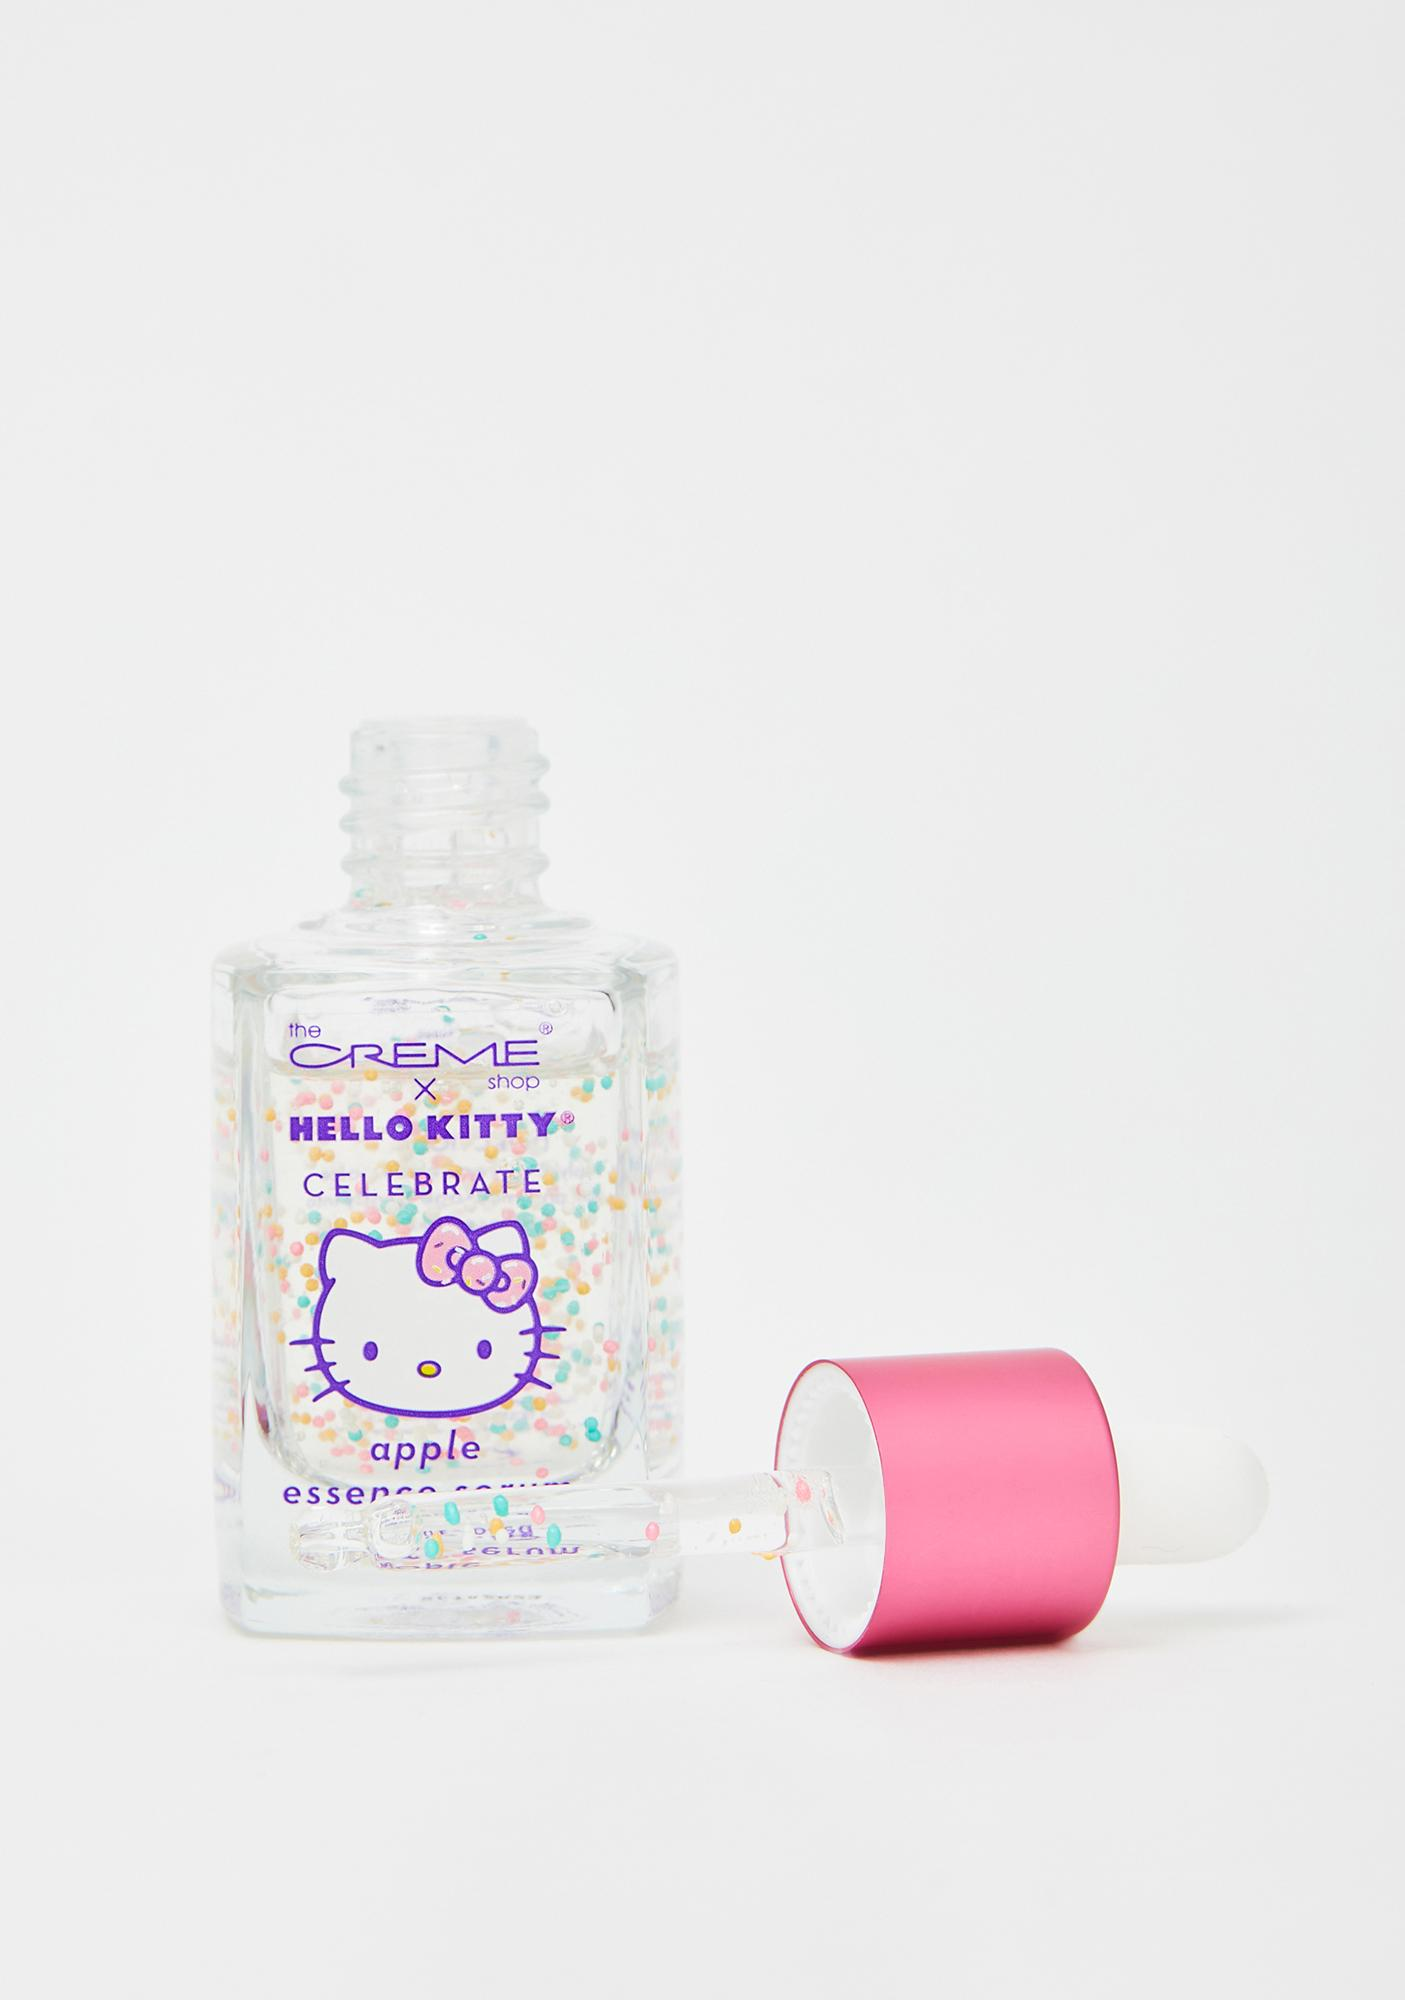 The Crème Shop Hello Kitty Essence Serum